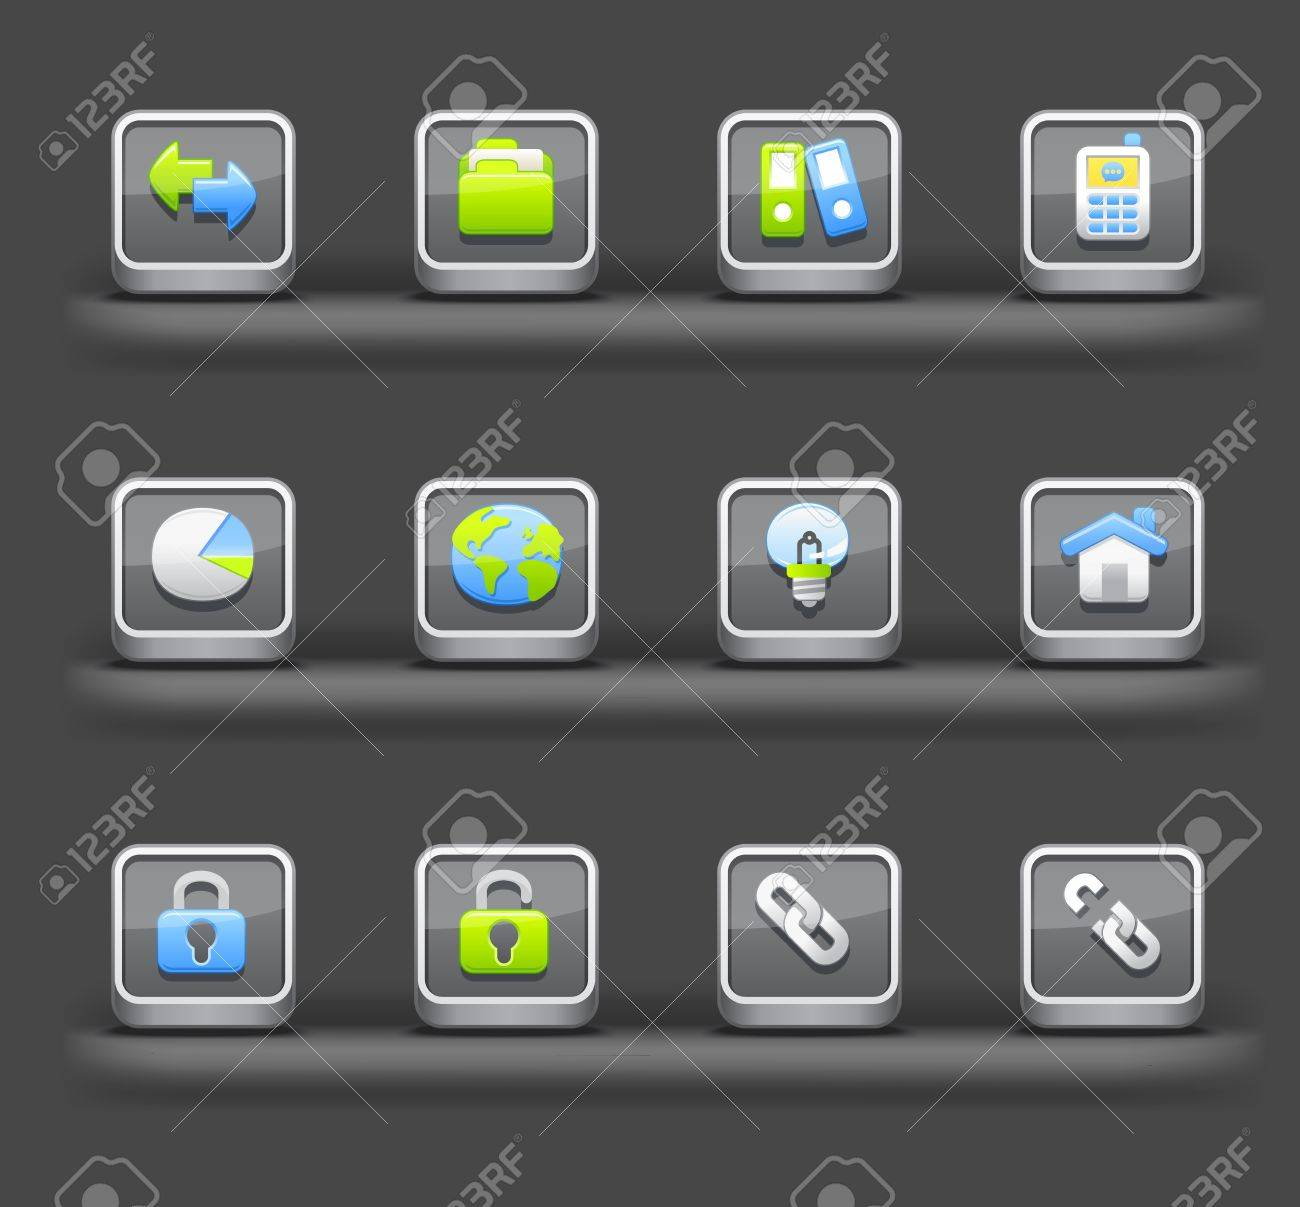 Business & Internet | Mobile devices apps icons Stock Vector - 11810246